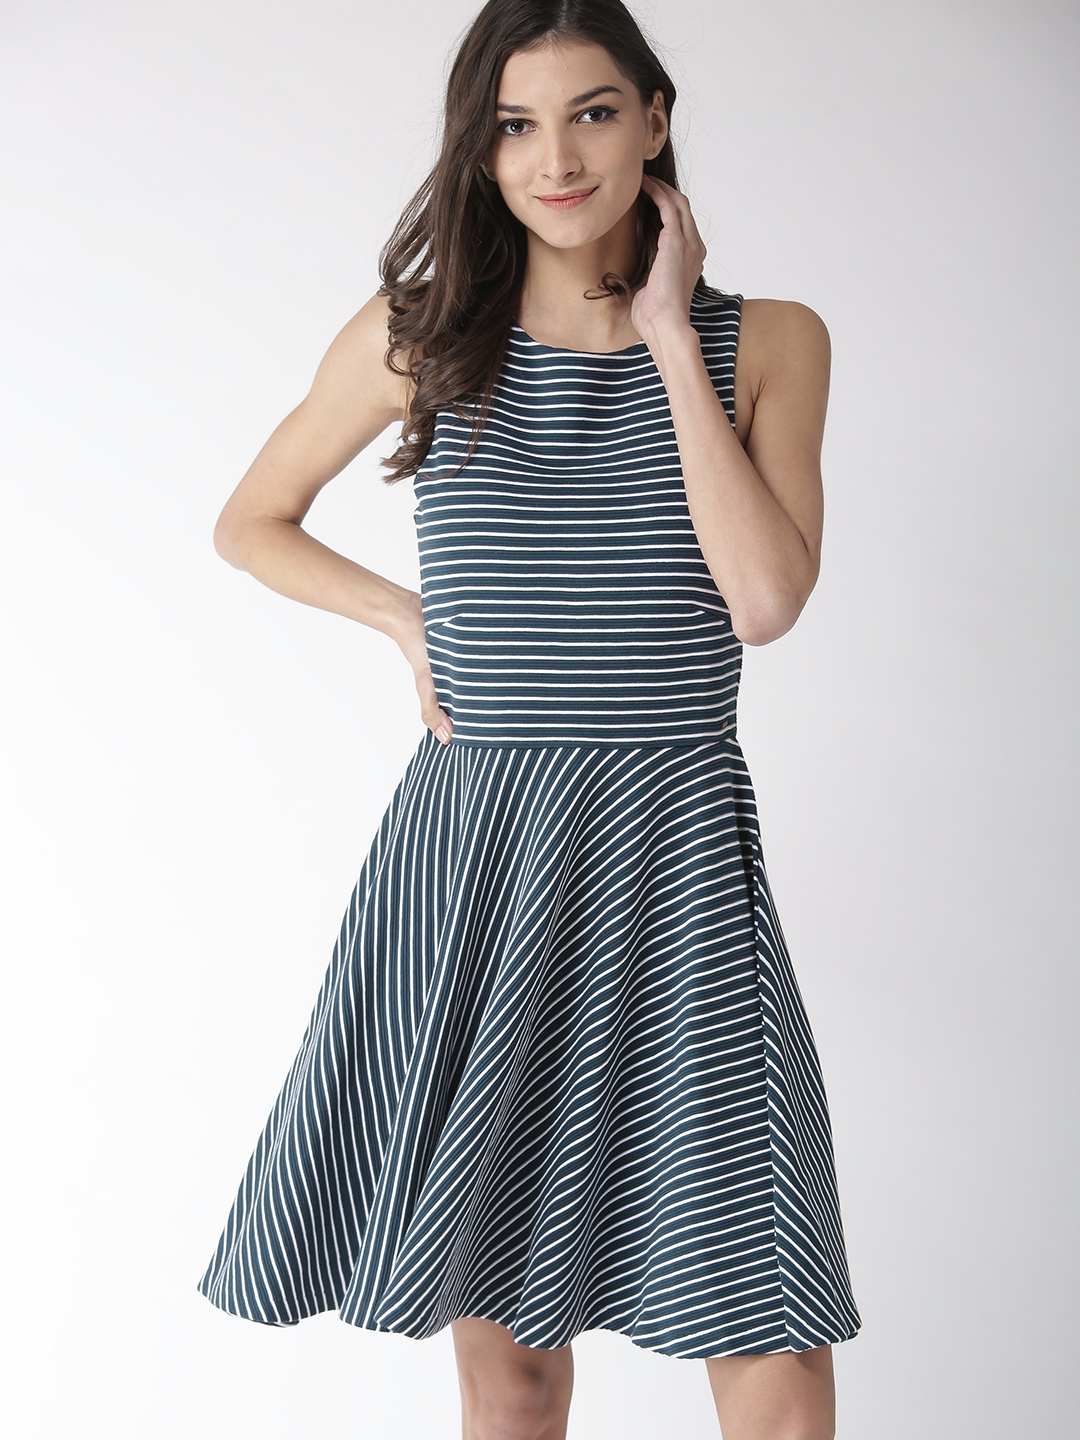 a54b97362a Buy Tommy Hilfiger Women Navy Blue Striped Fit And Flare Dress ...